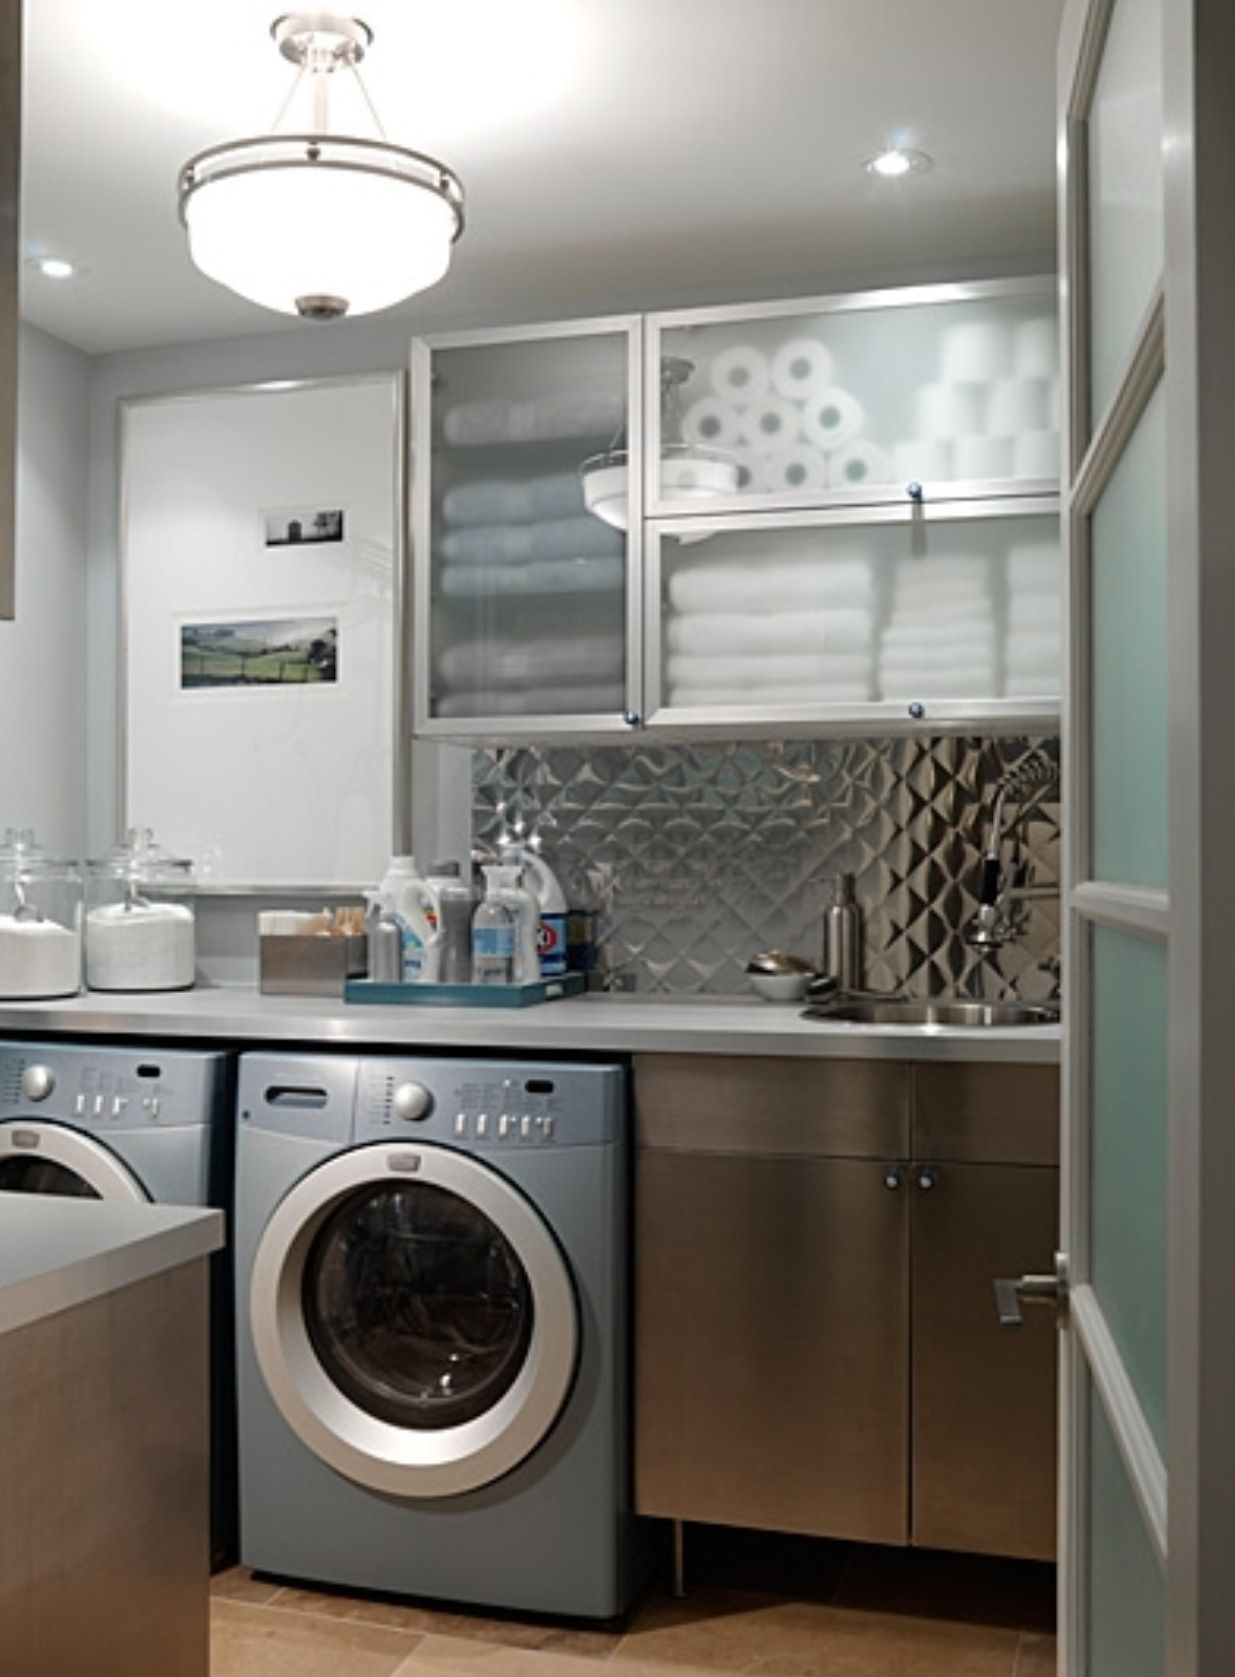 50 ways to make your laundry room pop | laundry, laundry rooms and